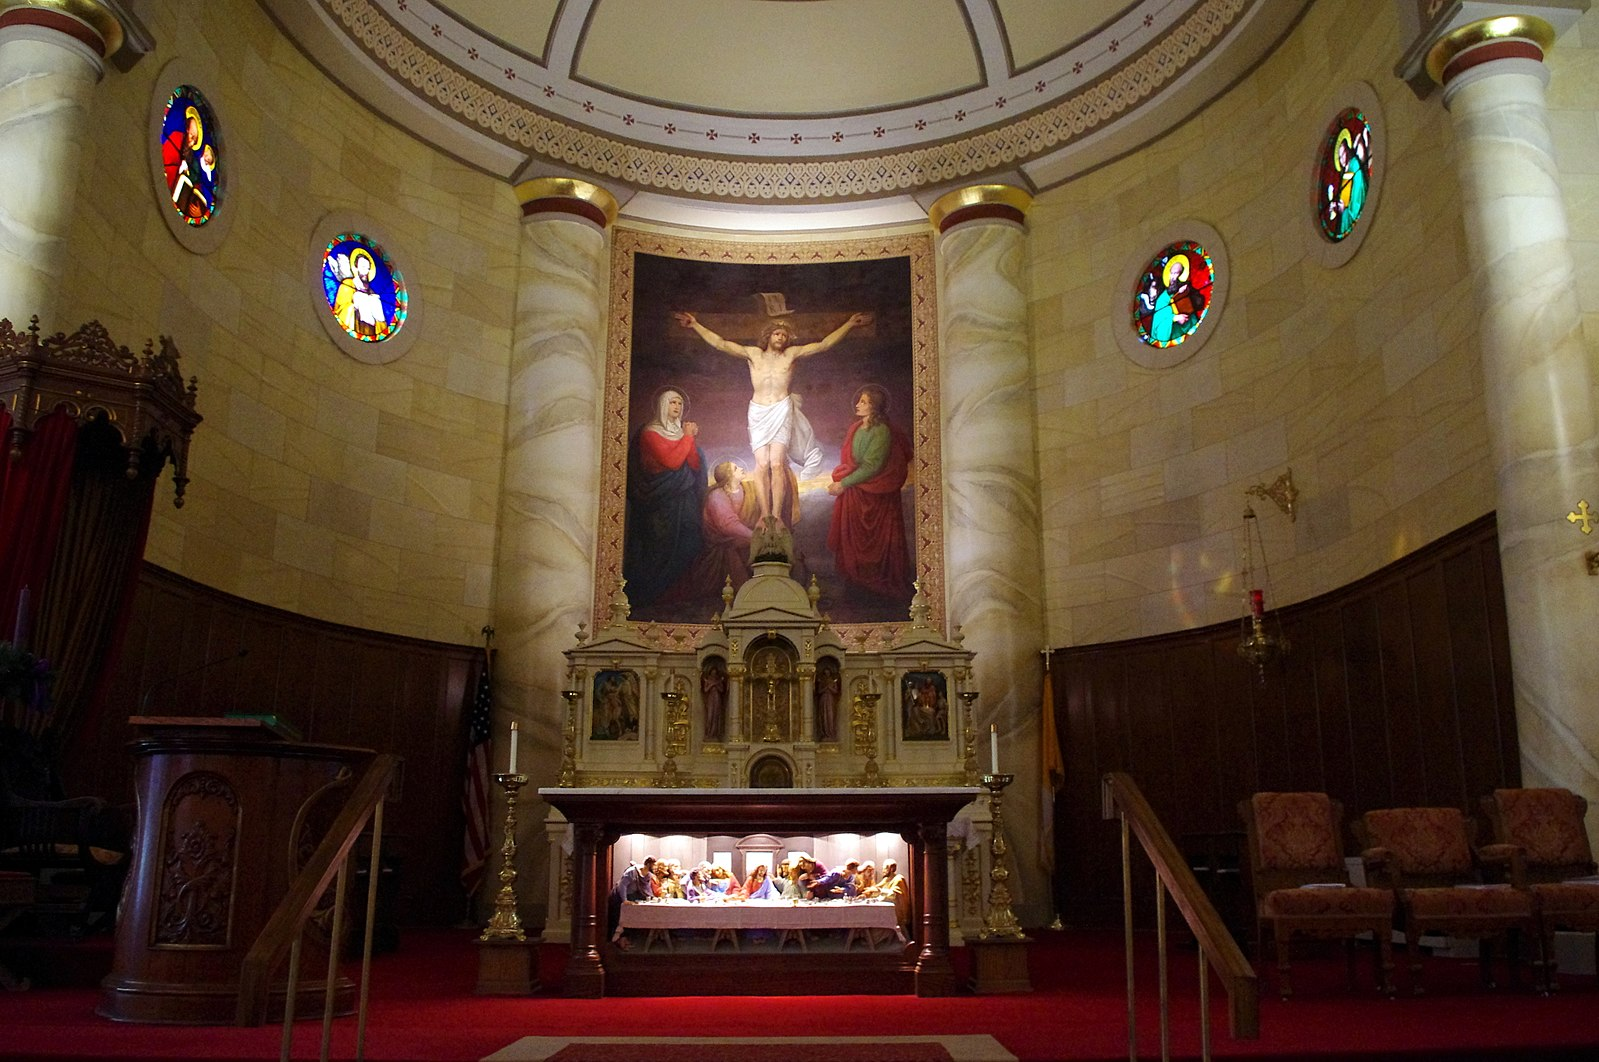 The Old Cathedral - The Old Cathedral in Vincennes is the first home of Catholicism in Indiana. As the seat for the Diocese of Vincennes, this home for Bishop Simon Brute was at the heart of the founding of both the Diocese of Fort Wayne and the University of Notre Dame.